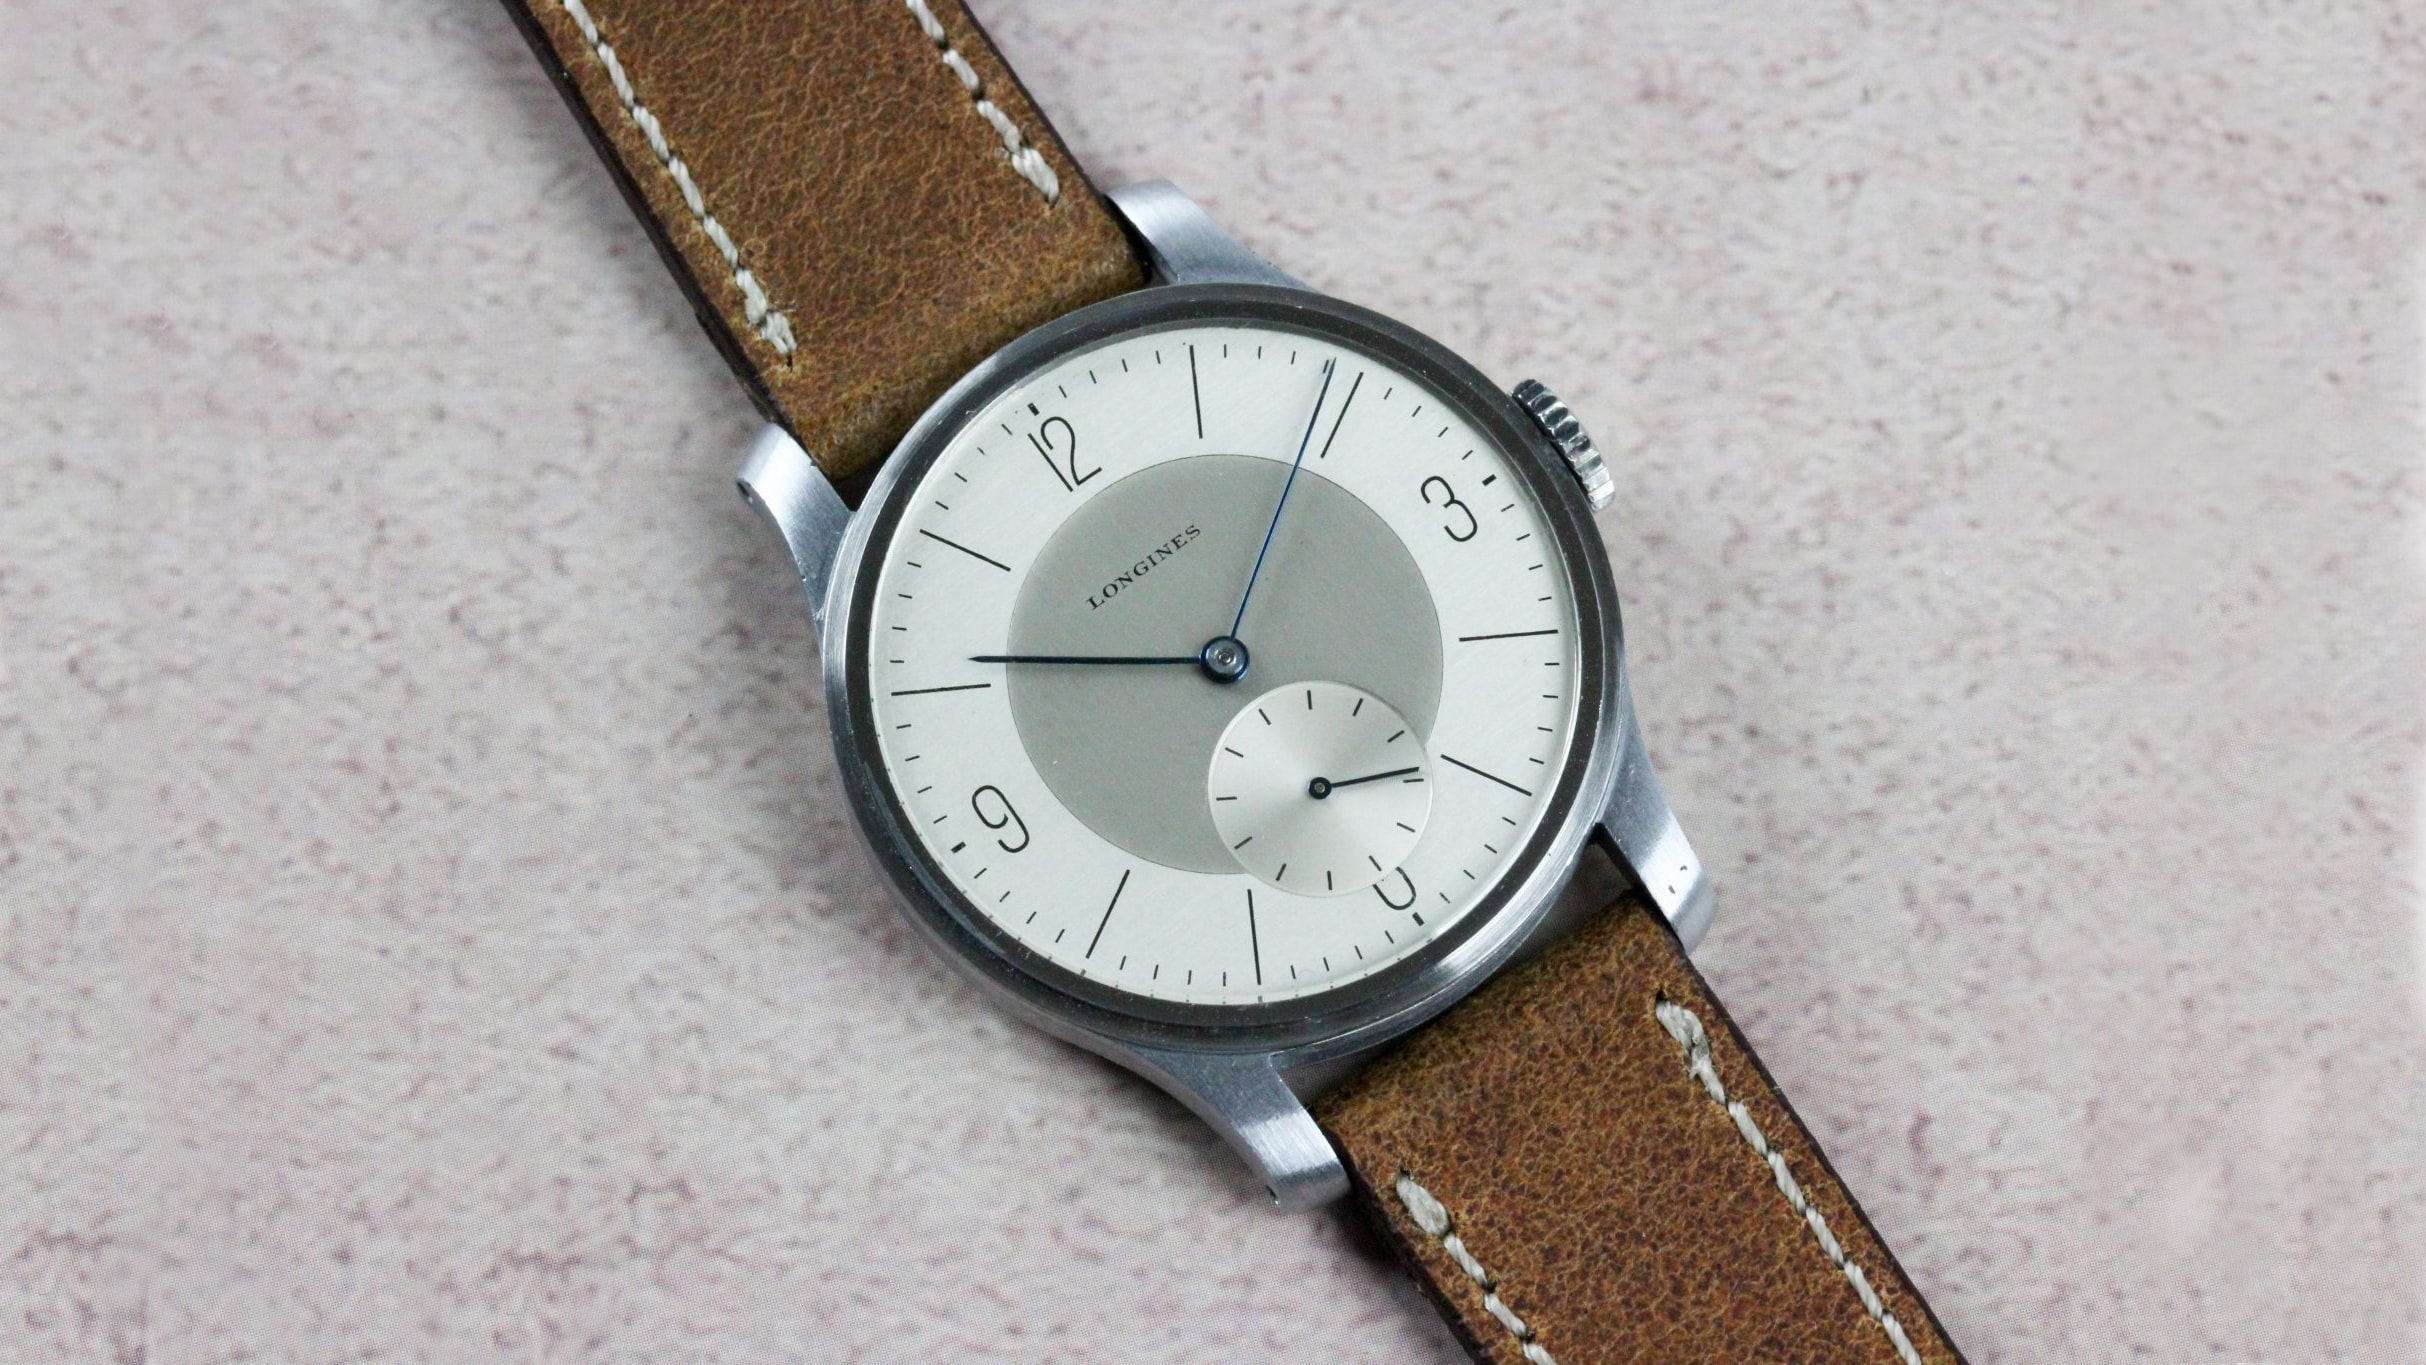 longines.jpg?ixlib=rails-1.1.0&fit=crop&